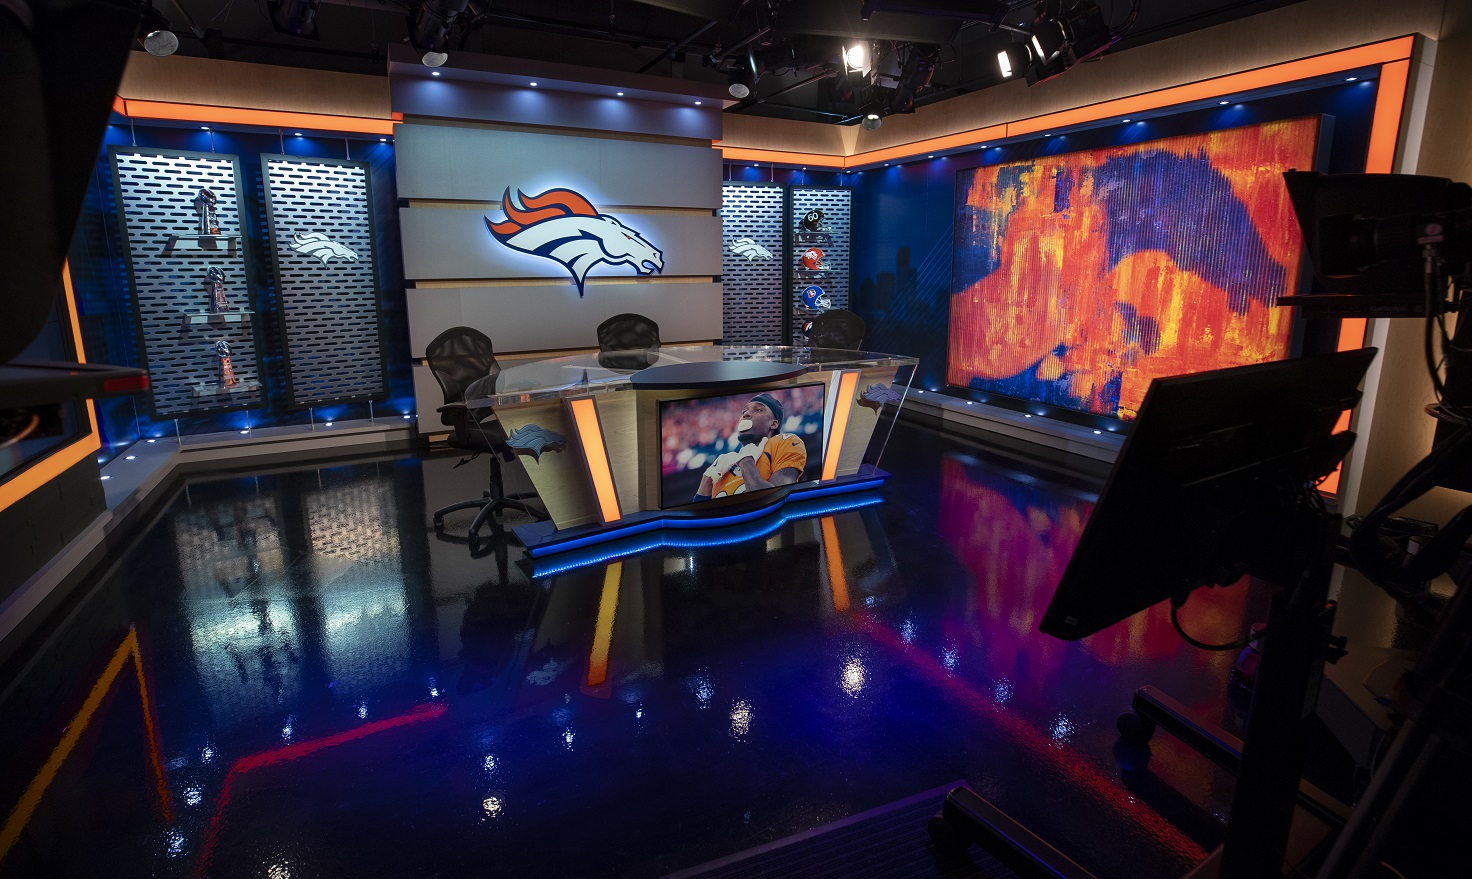 Denver Broncos Production Team Selects Sony Cameras to Capture Pristine Images from New Set for Broadcast and Online Programming